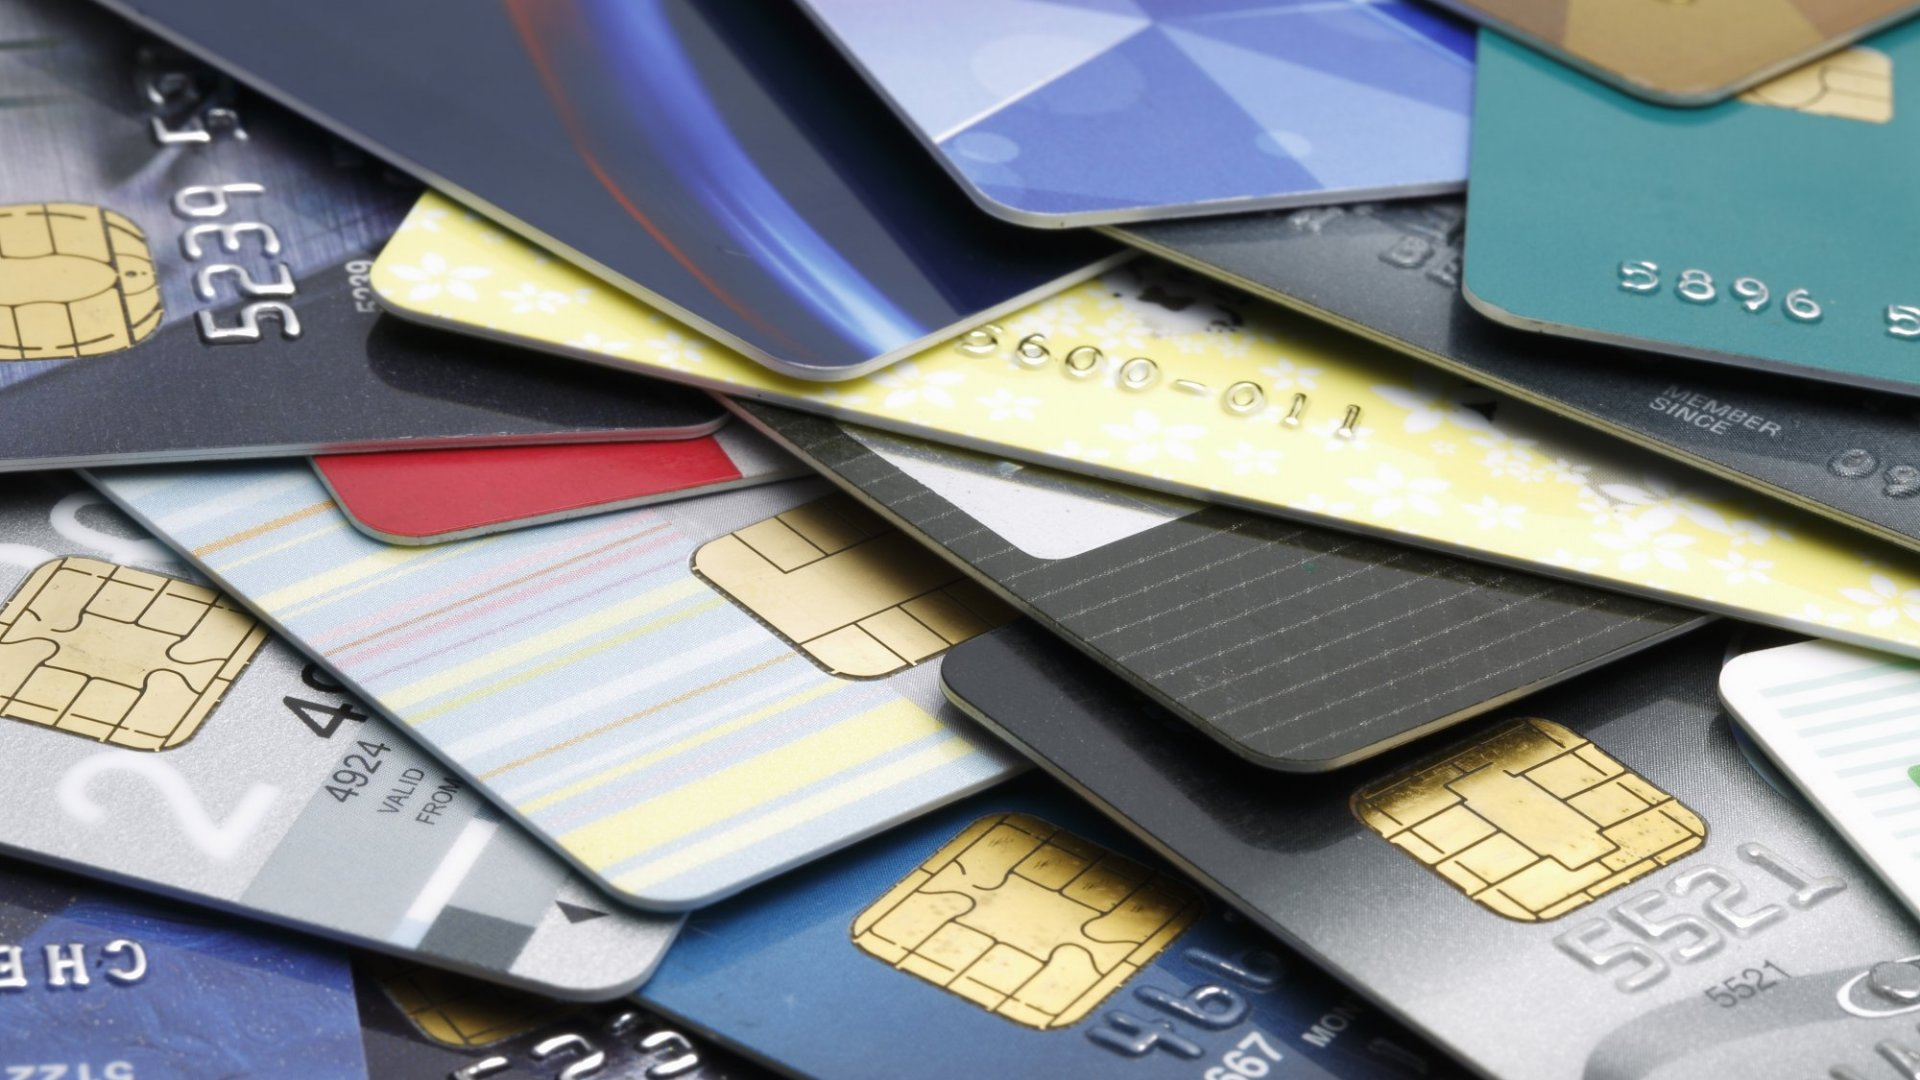 4 Things to Remember About Debt as a Tool for Your Business